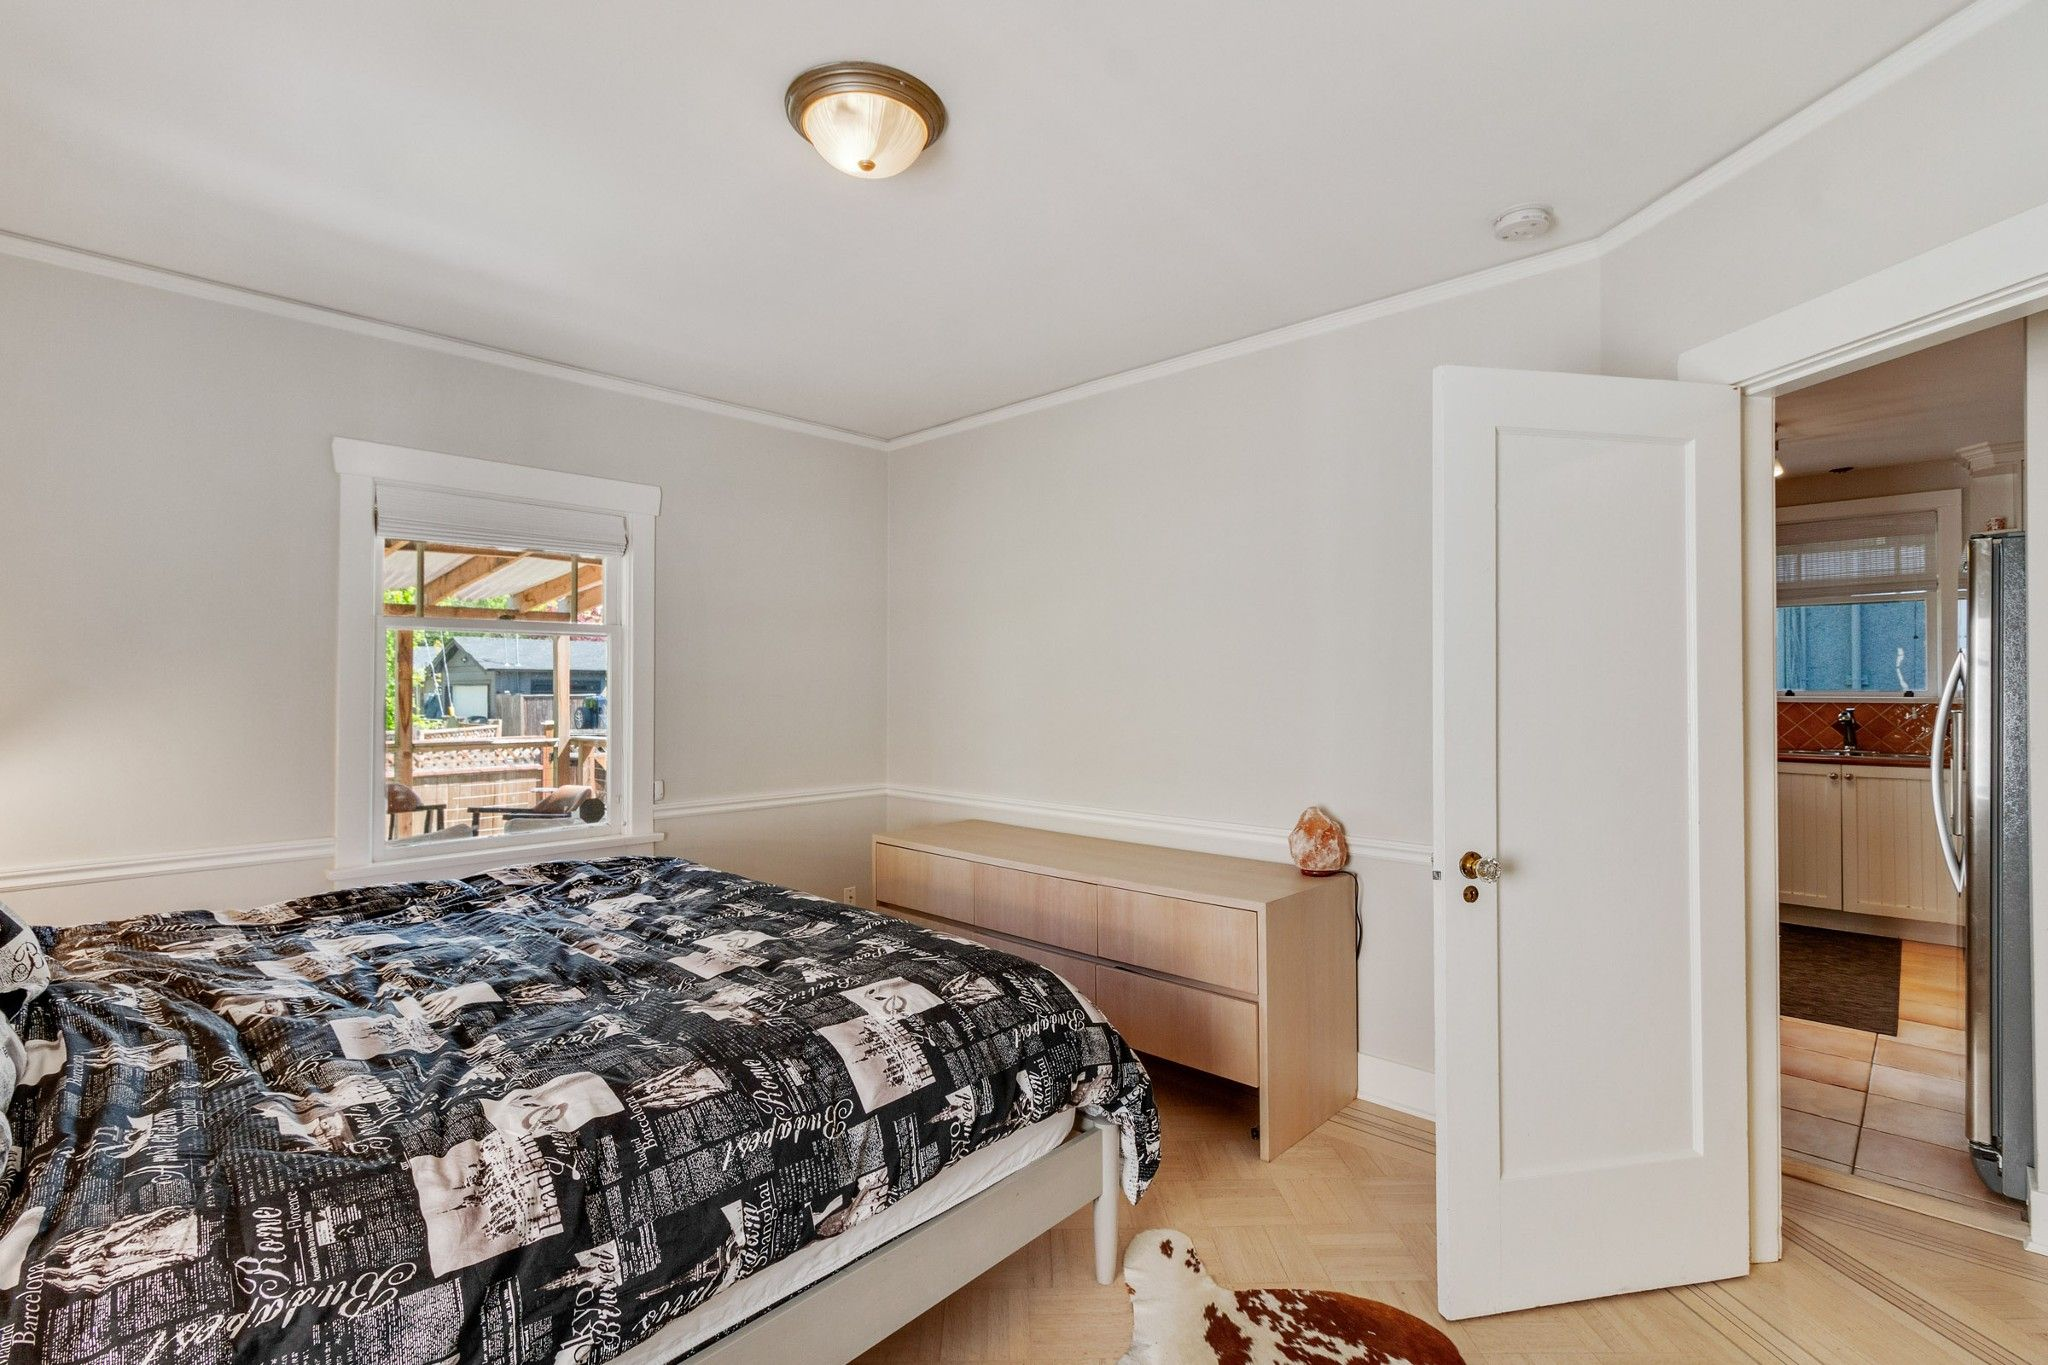 Photo 10: Photos: 3742 ONTARIO Street in Vancouver: Main House for sale (Vancouver East)  : MLS®# R2580004